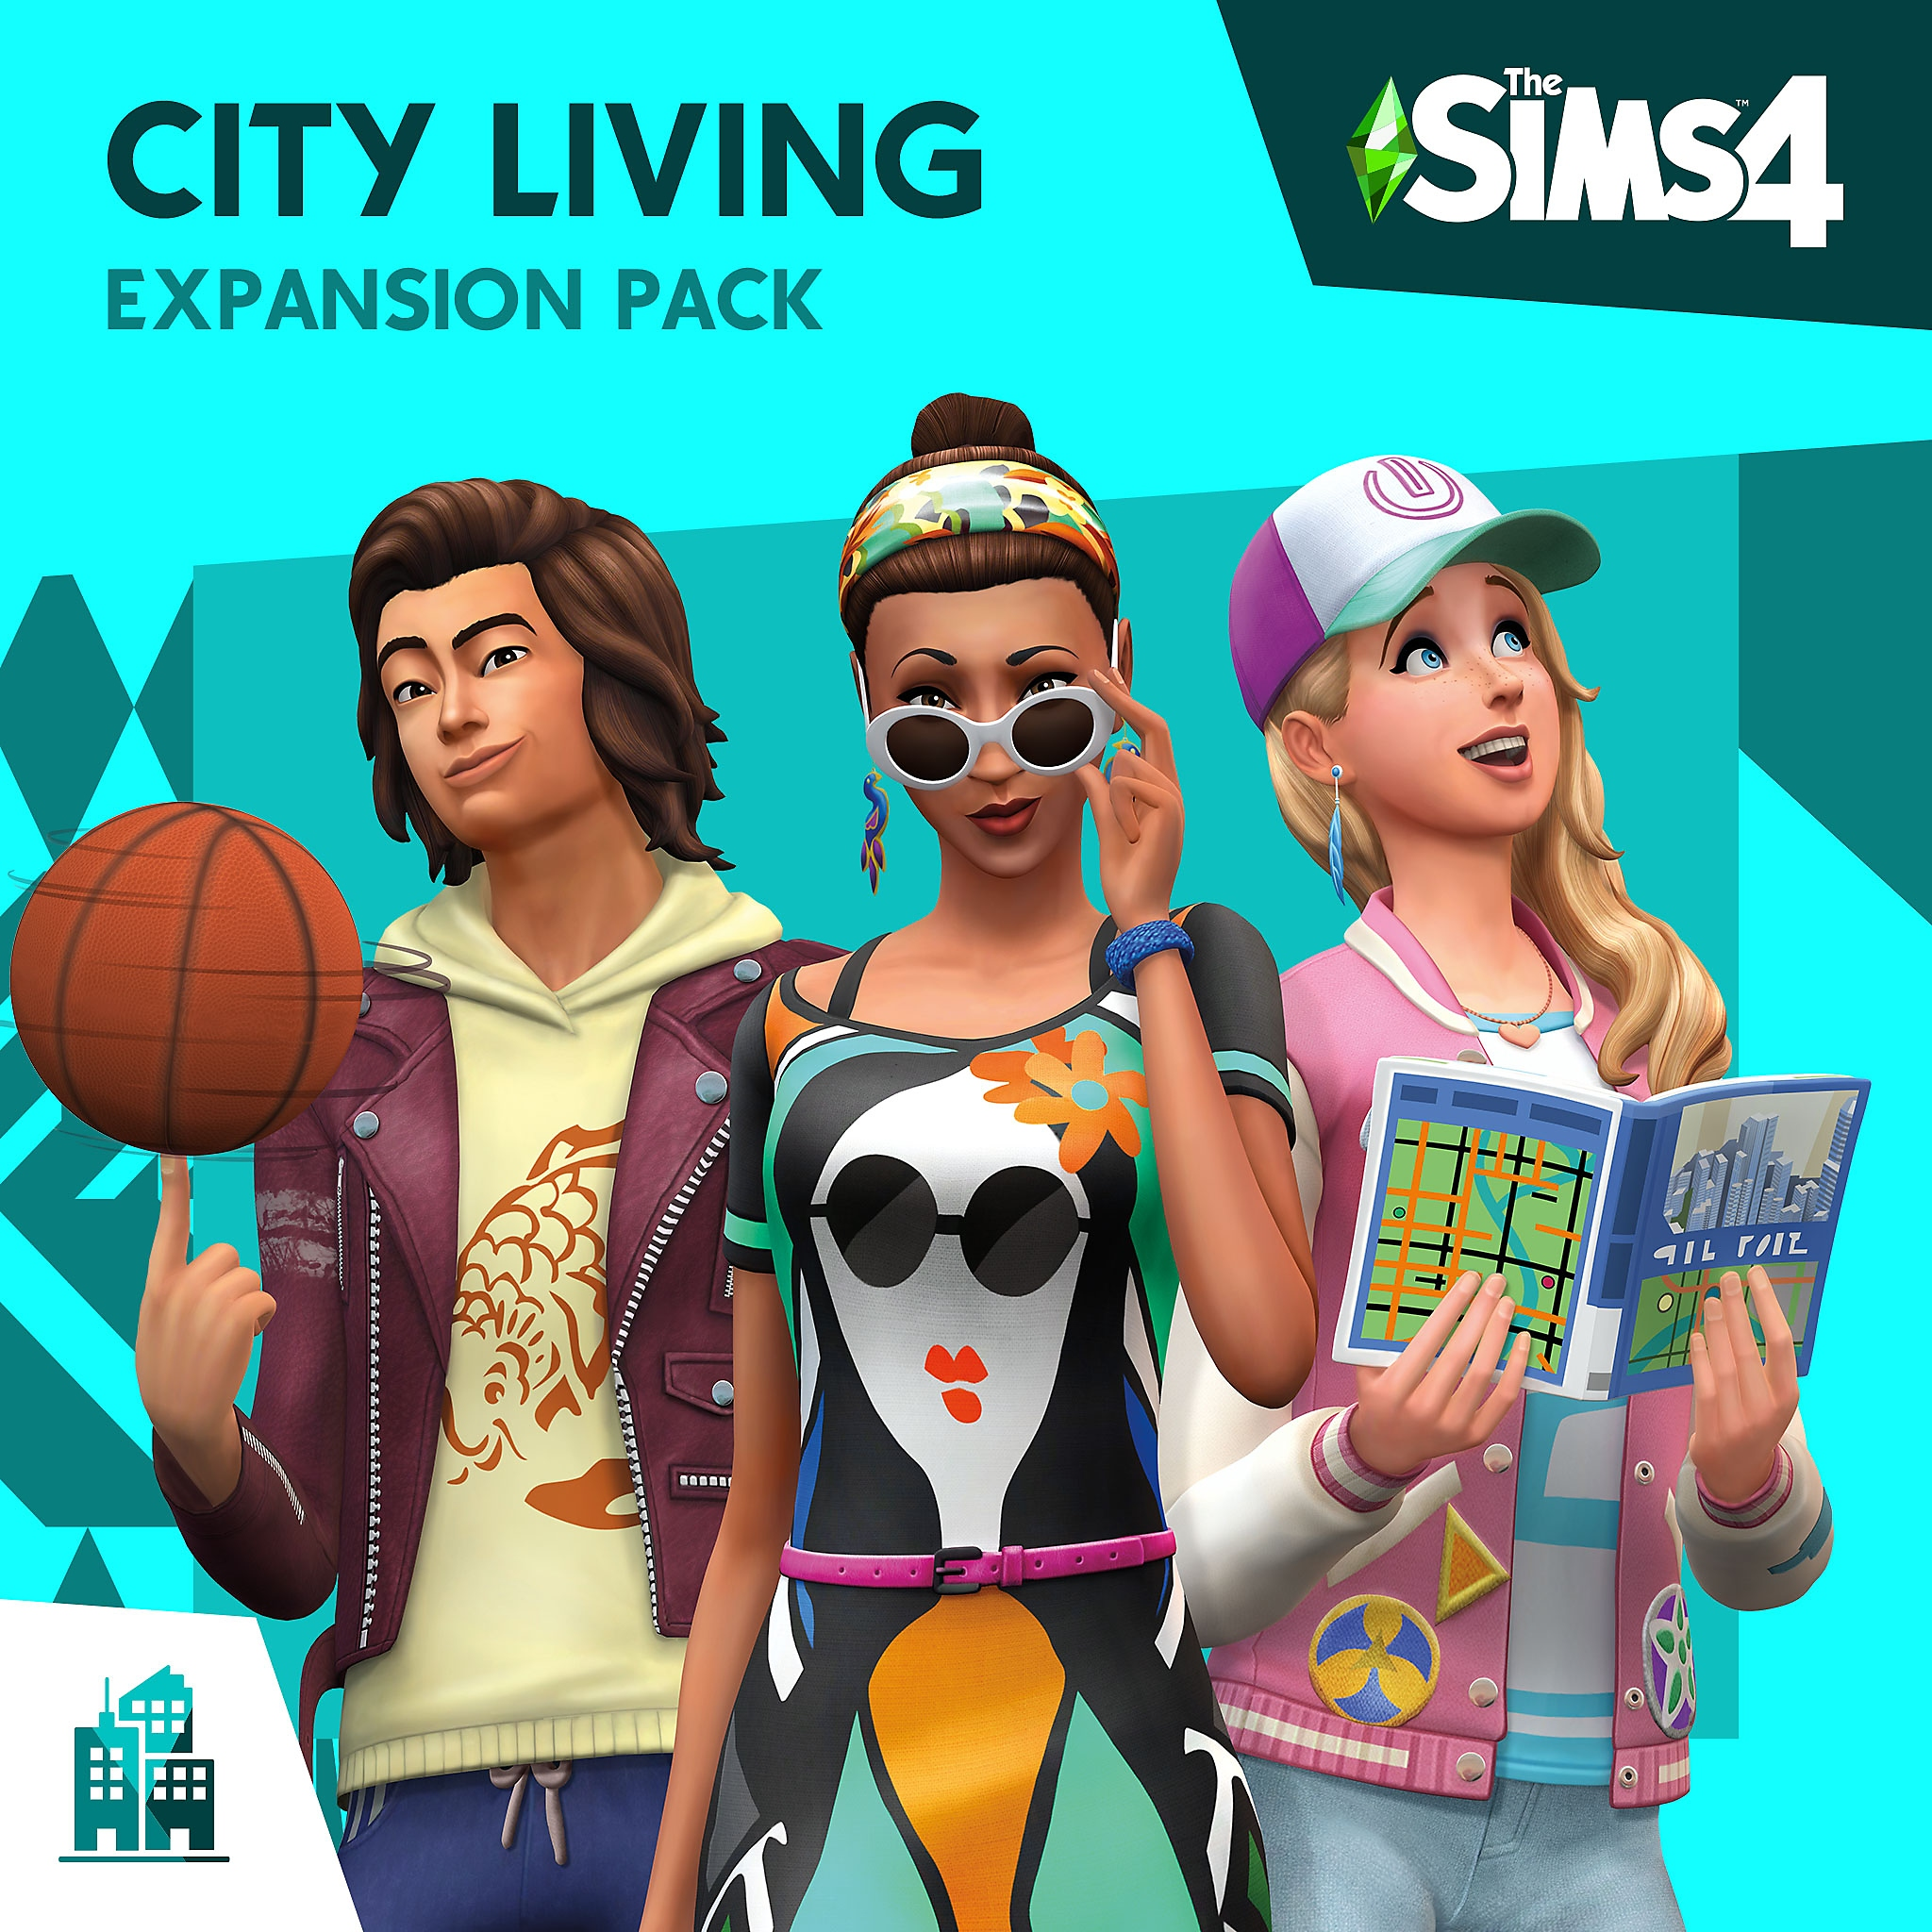 City Living Expansion Pack